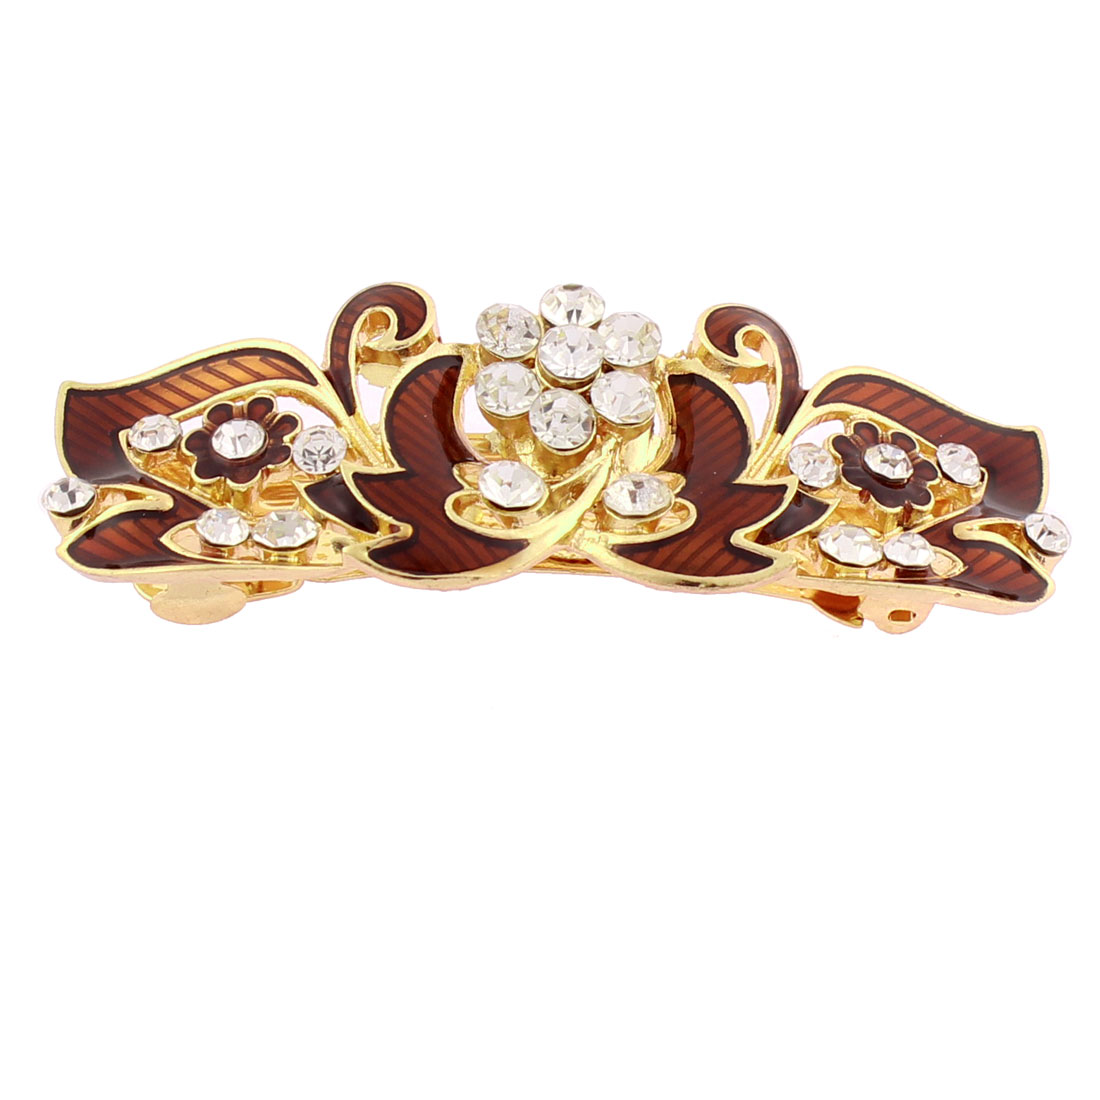 Lady Rhinestone Inlaid Flower Accent French Hair Barrette Clip Gold Tone Brown - image 2 of 2